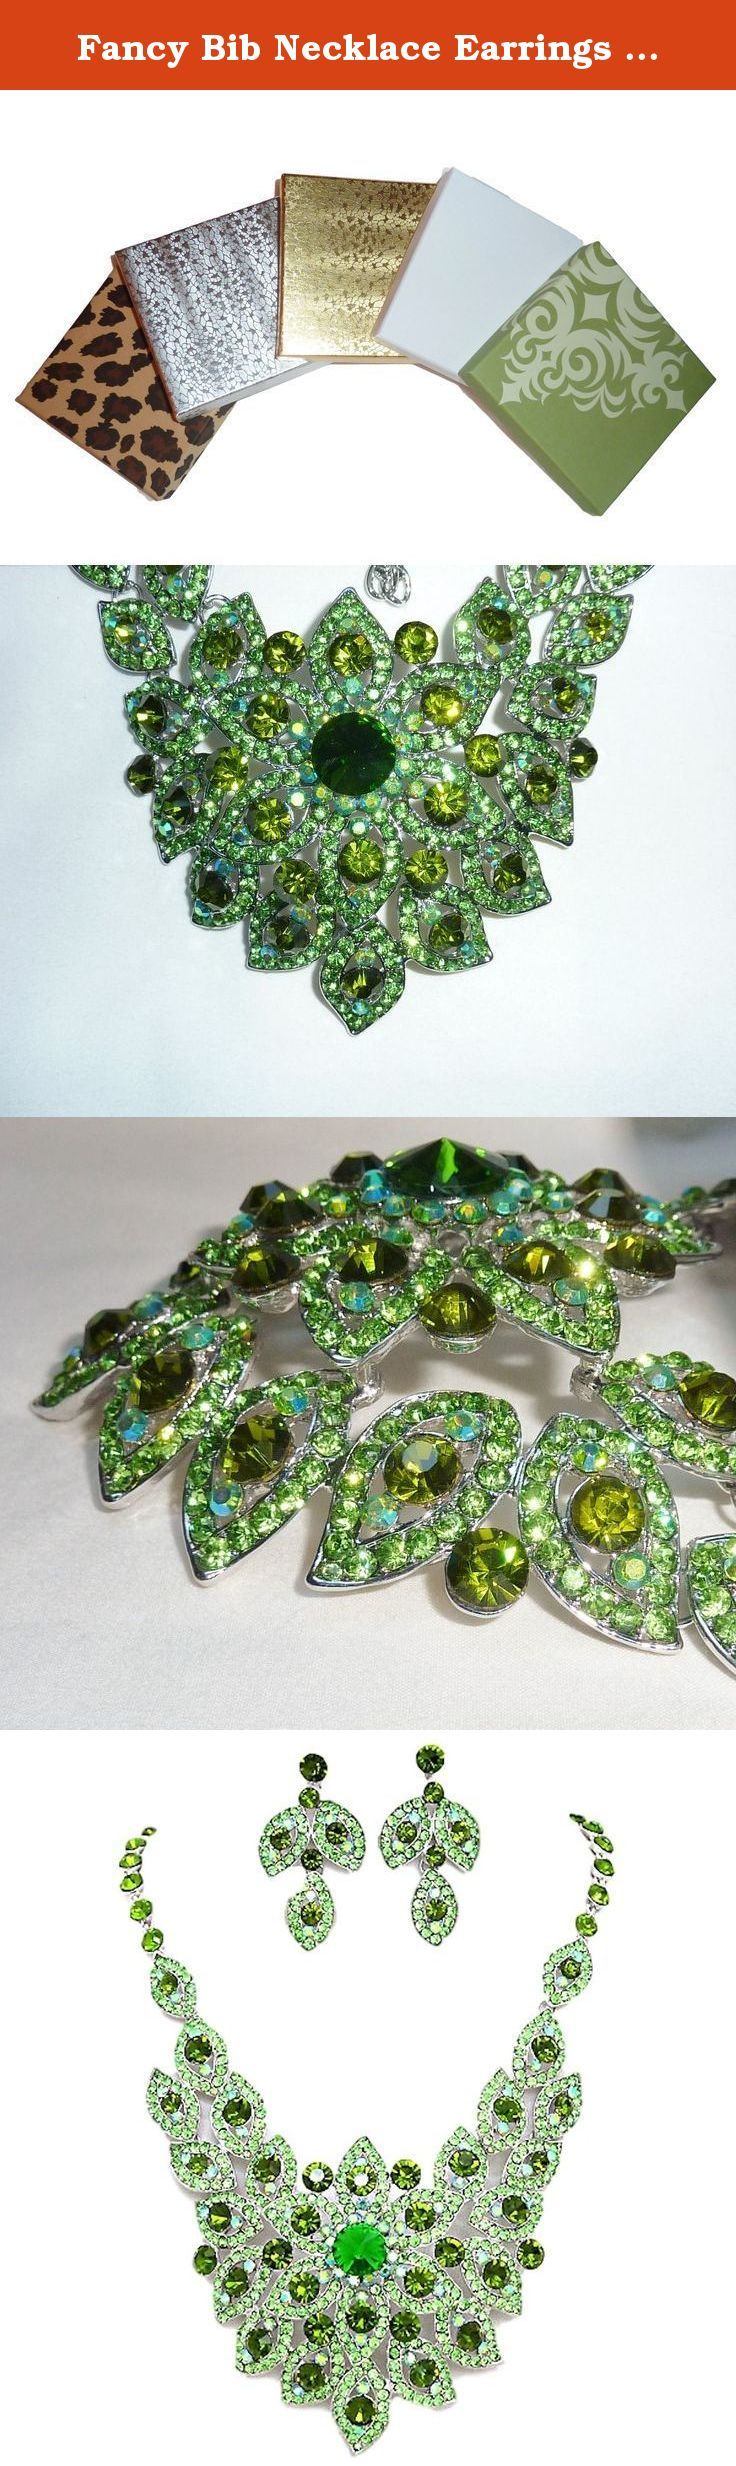 Fancy Bib Necklace Earrings Set Green Crystal Rhinestone Silver Tone Post. This Elegant Necklace and Earrings Set is Perfect for any Affair. Stunning Dark and Light Crystal and Rhinestones. Some May See Leaves and Flowers in Necklace. Measures 14 inch plus 3 inch Ext. Earrings Measure 2 inch and have Post. This is a Beautiful Evening Bridal Set. Perfect for Any Formal Affair. Silver Tone. Center of Necklace Sits Slightly Concave. Necklace Makes a Statement. W10-187987] EVN01425-R-GR.